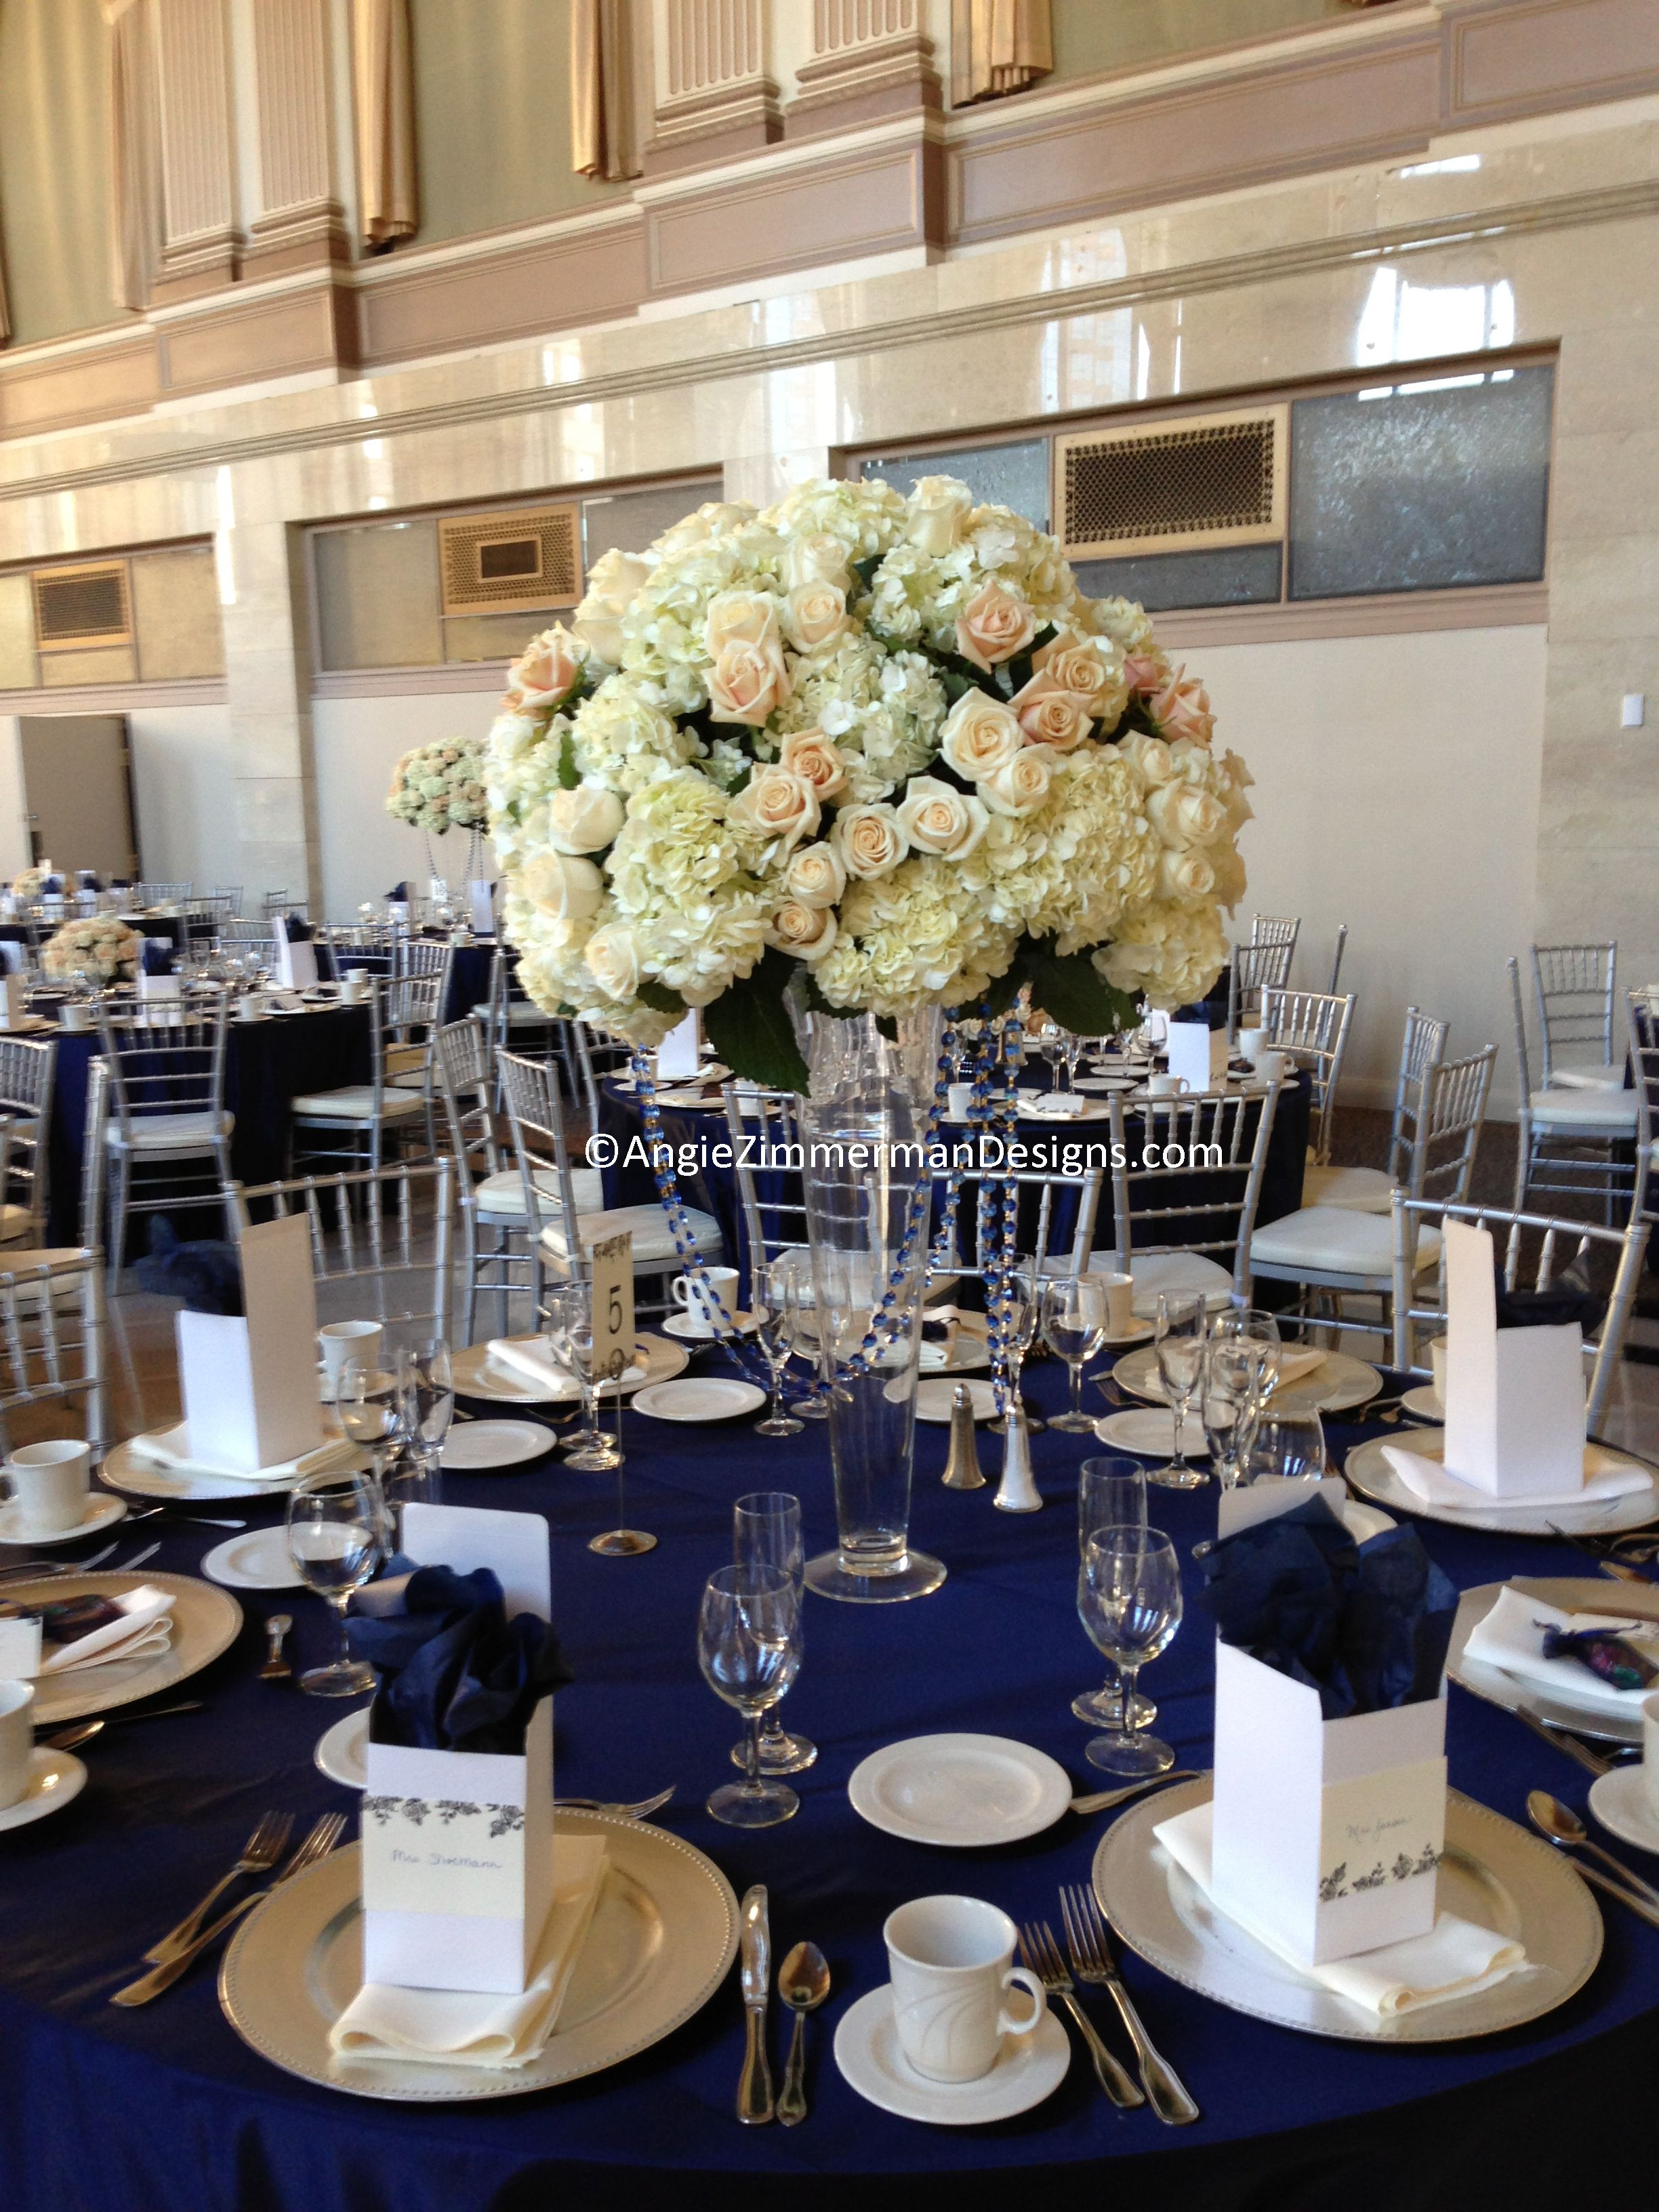 The Color Scheme For This Wedding Was White Ivory Taupe And Navy Blue I Found Dark Crystal Garlands That Strung Very Pretty